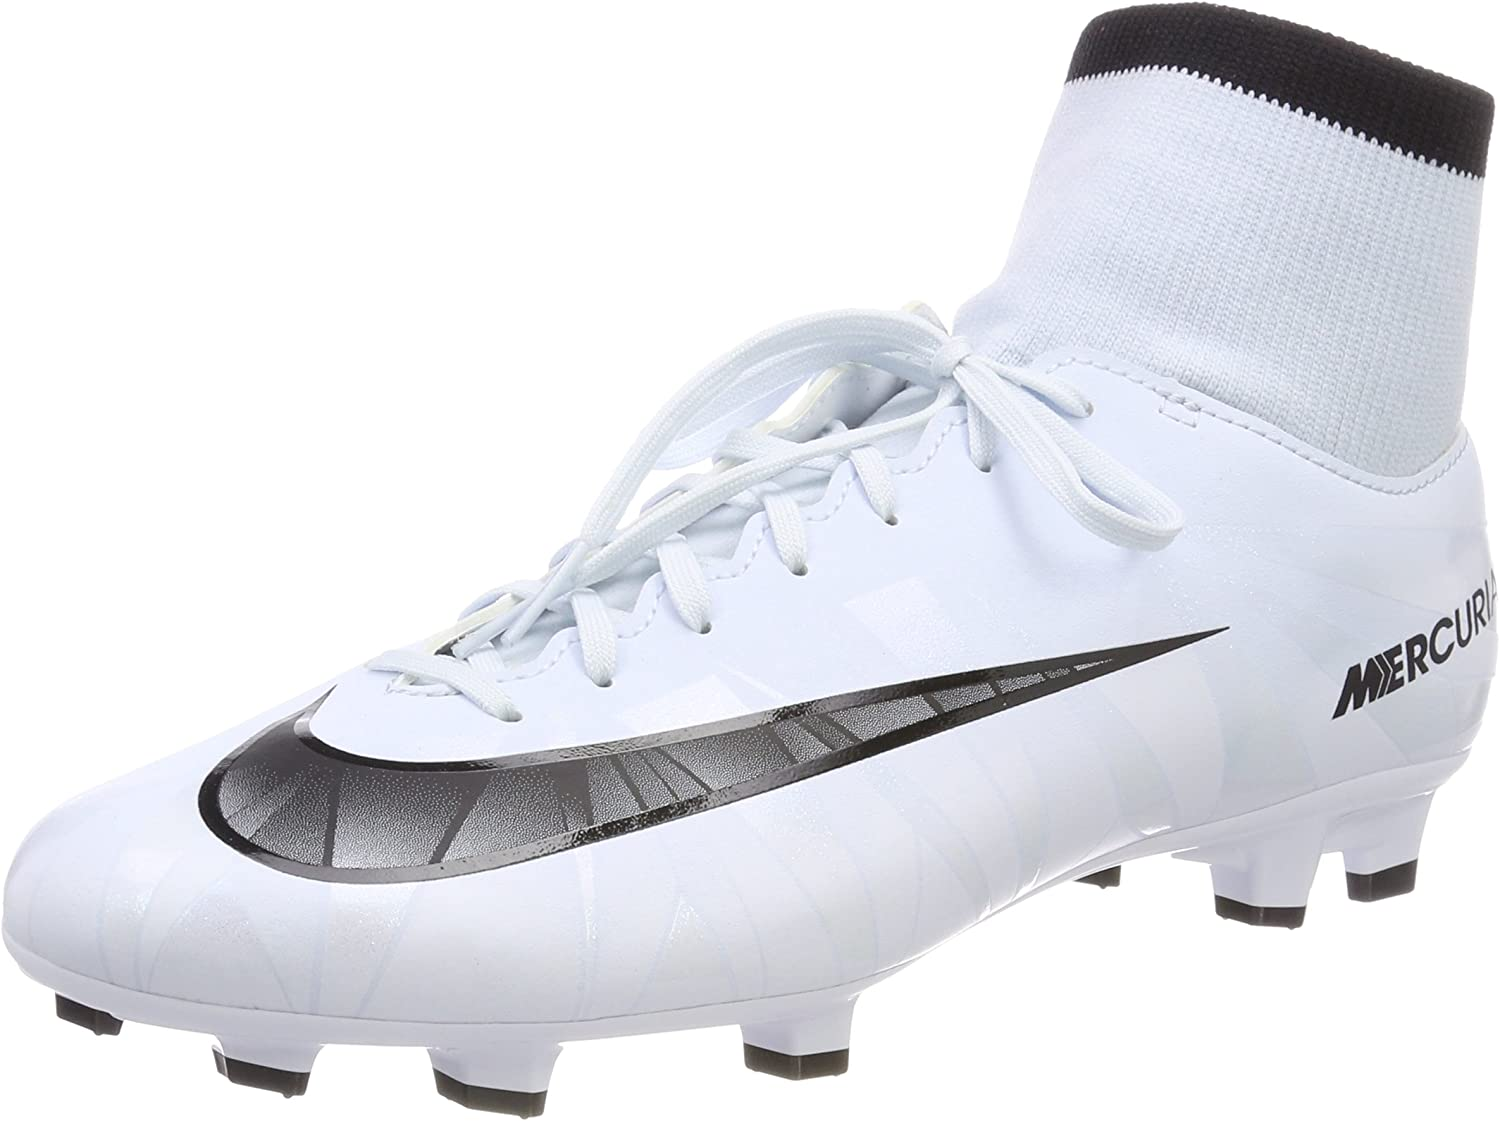 Nike Men's Mercurial Victory VI CR7 DF FG Football Boots